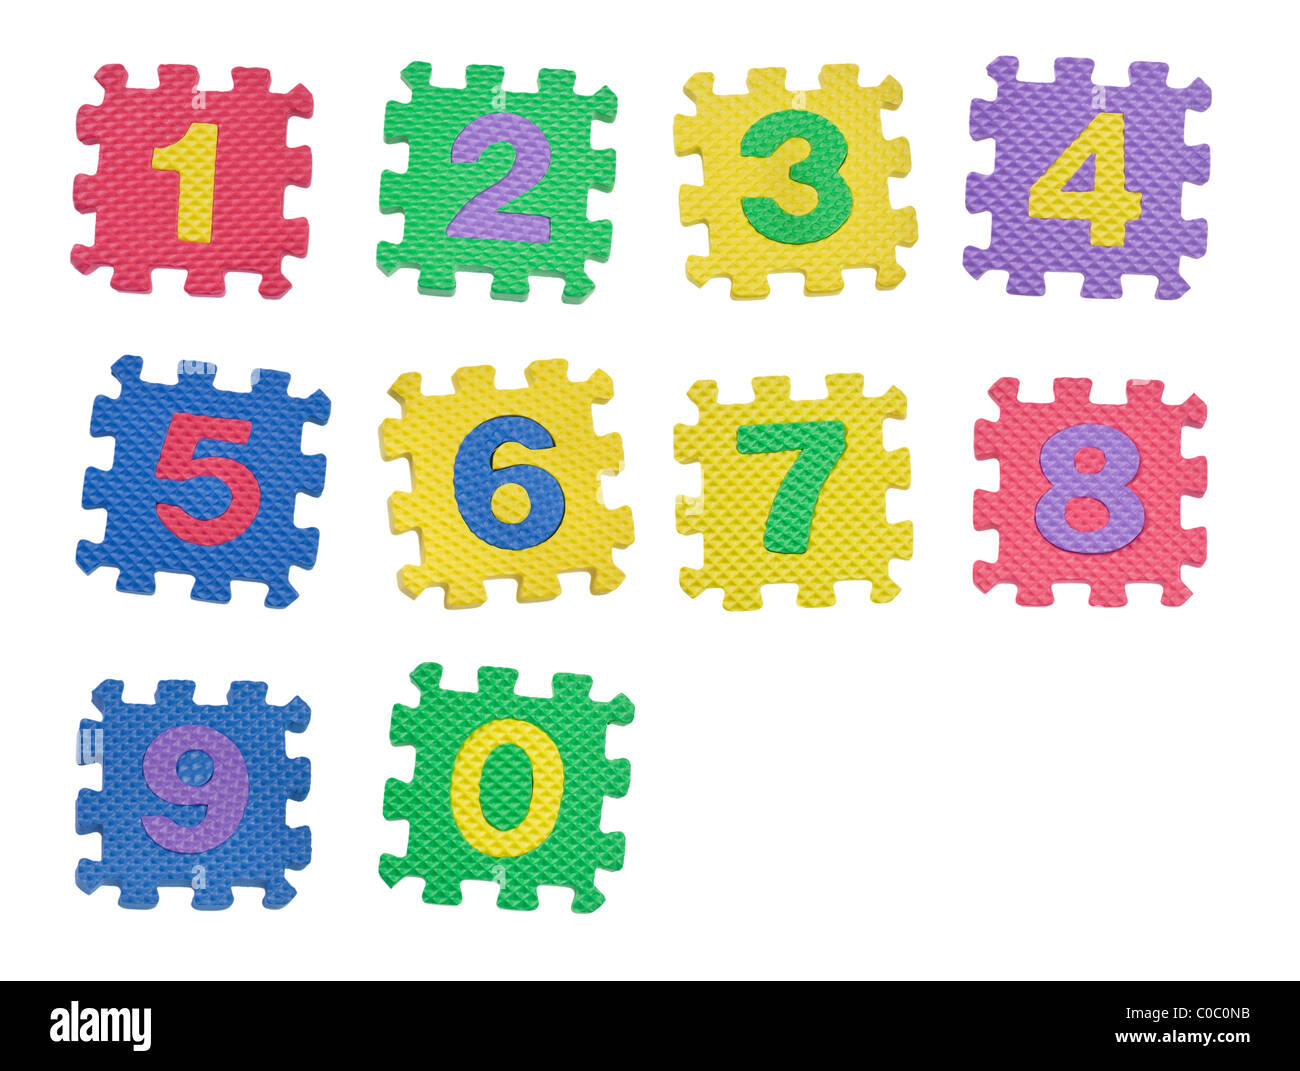 Number blocks from 0 to 9 isolated on white background - Stock Image